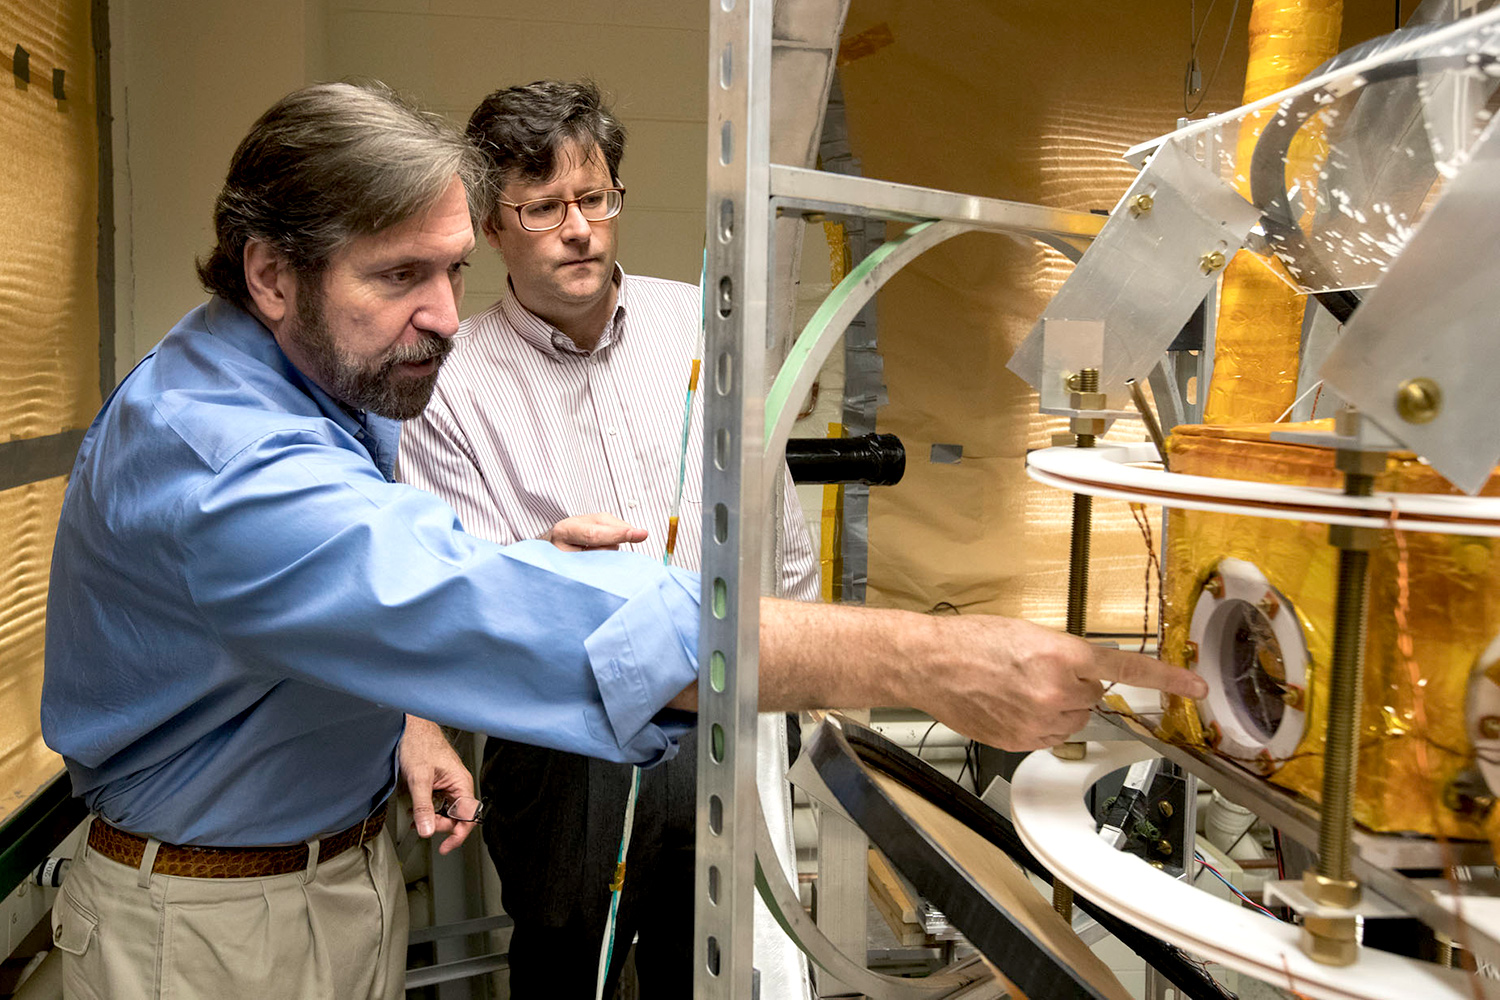 Physicists Gordon Cates and Wilson Miller with the unique imaging apparatus they built in their lab.